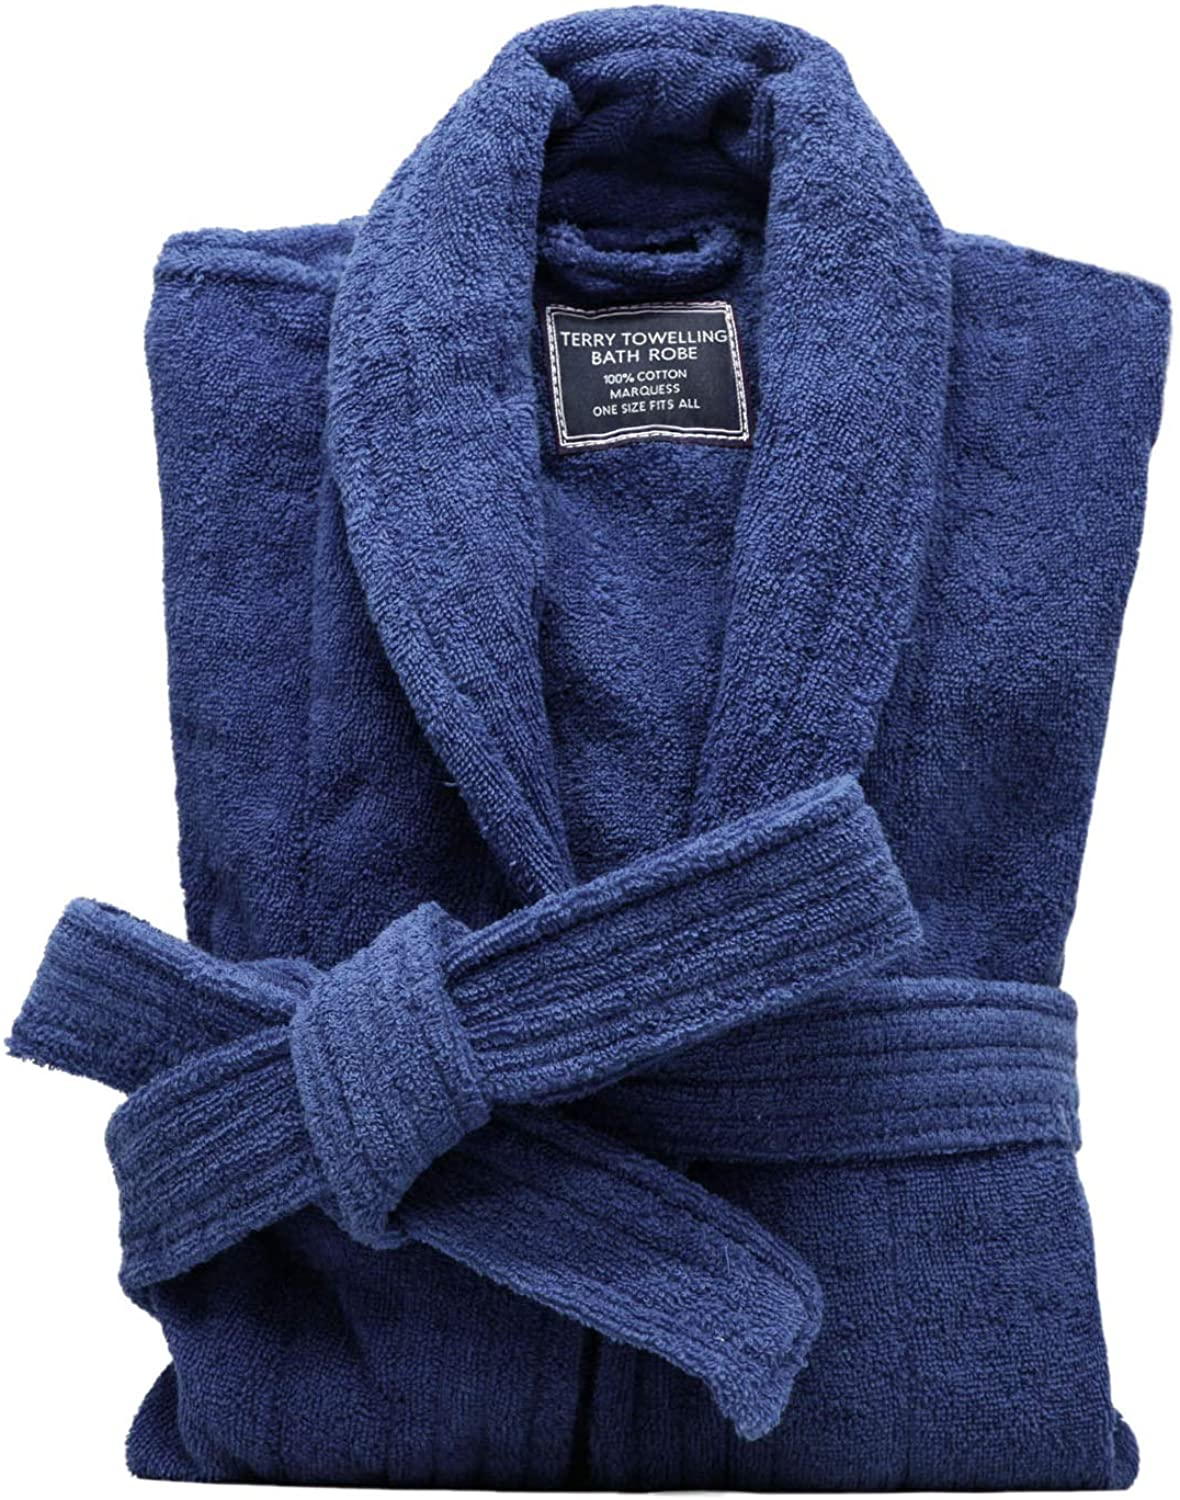 All-Cotton Bathrobe Thick Seattle Mall Don't miss the campaign Plush Housecoat Cloth Toweling Terry